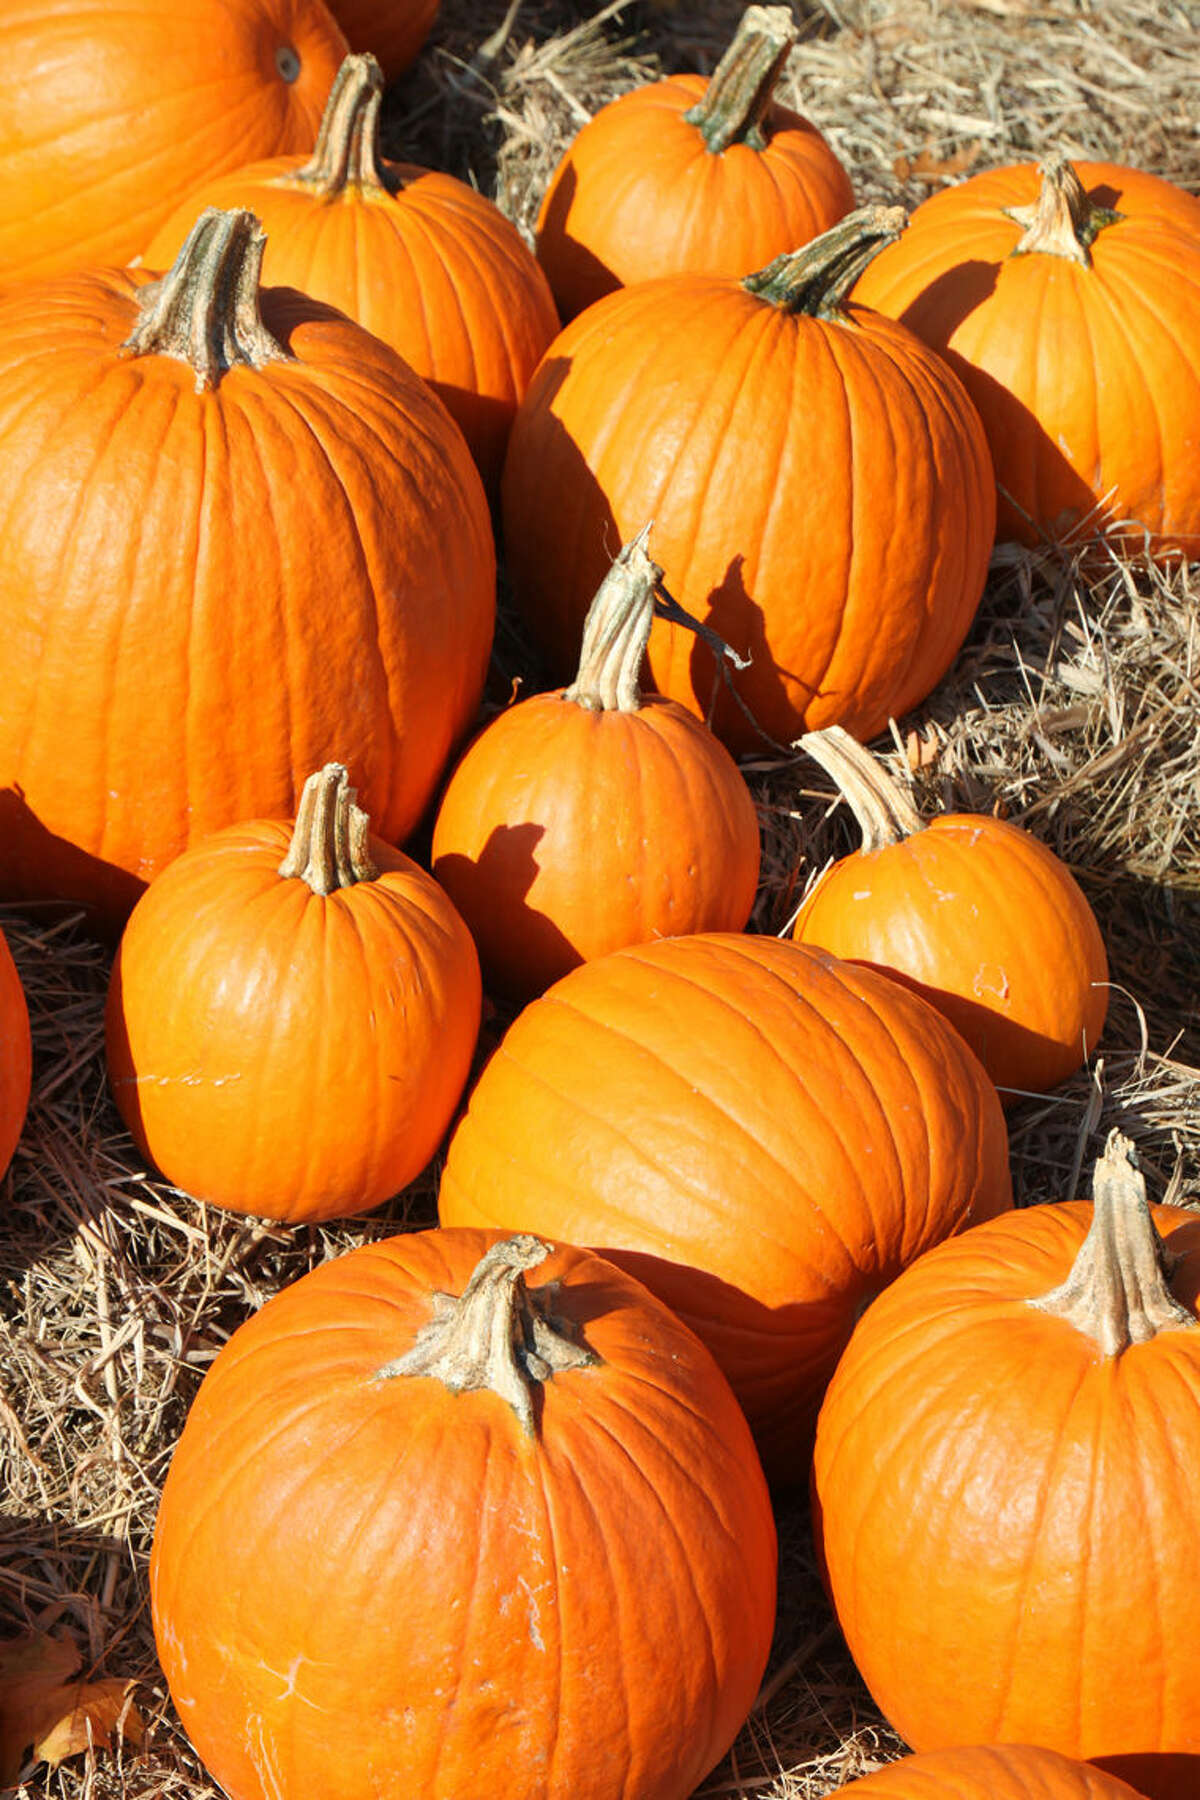 When looking for suitable pie pumpkins avoid bruises, cracks and soft spots.